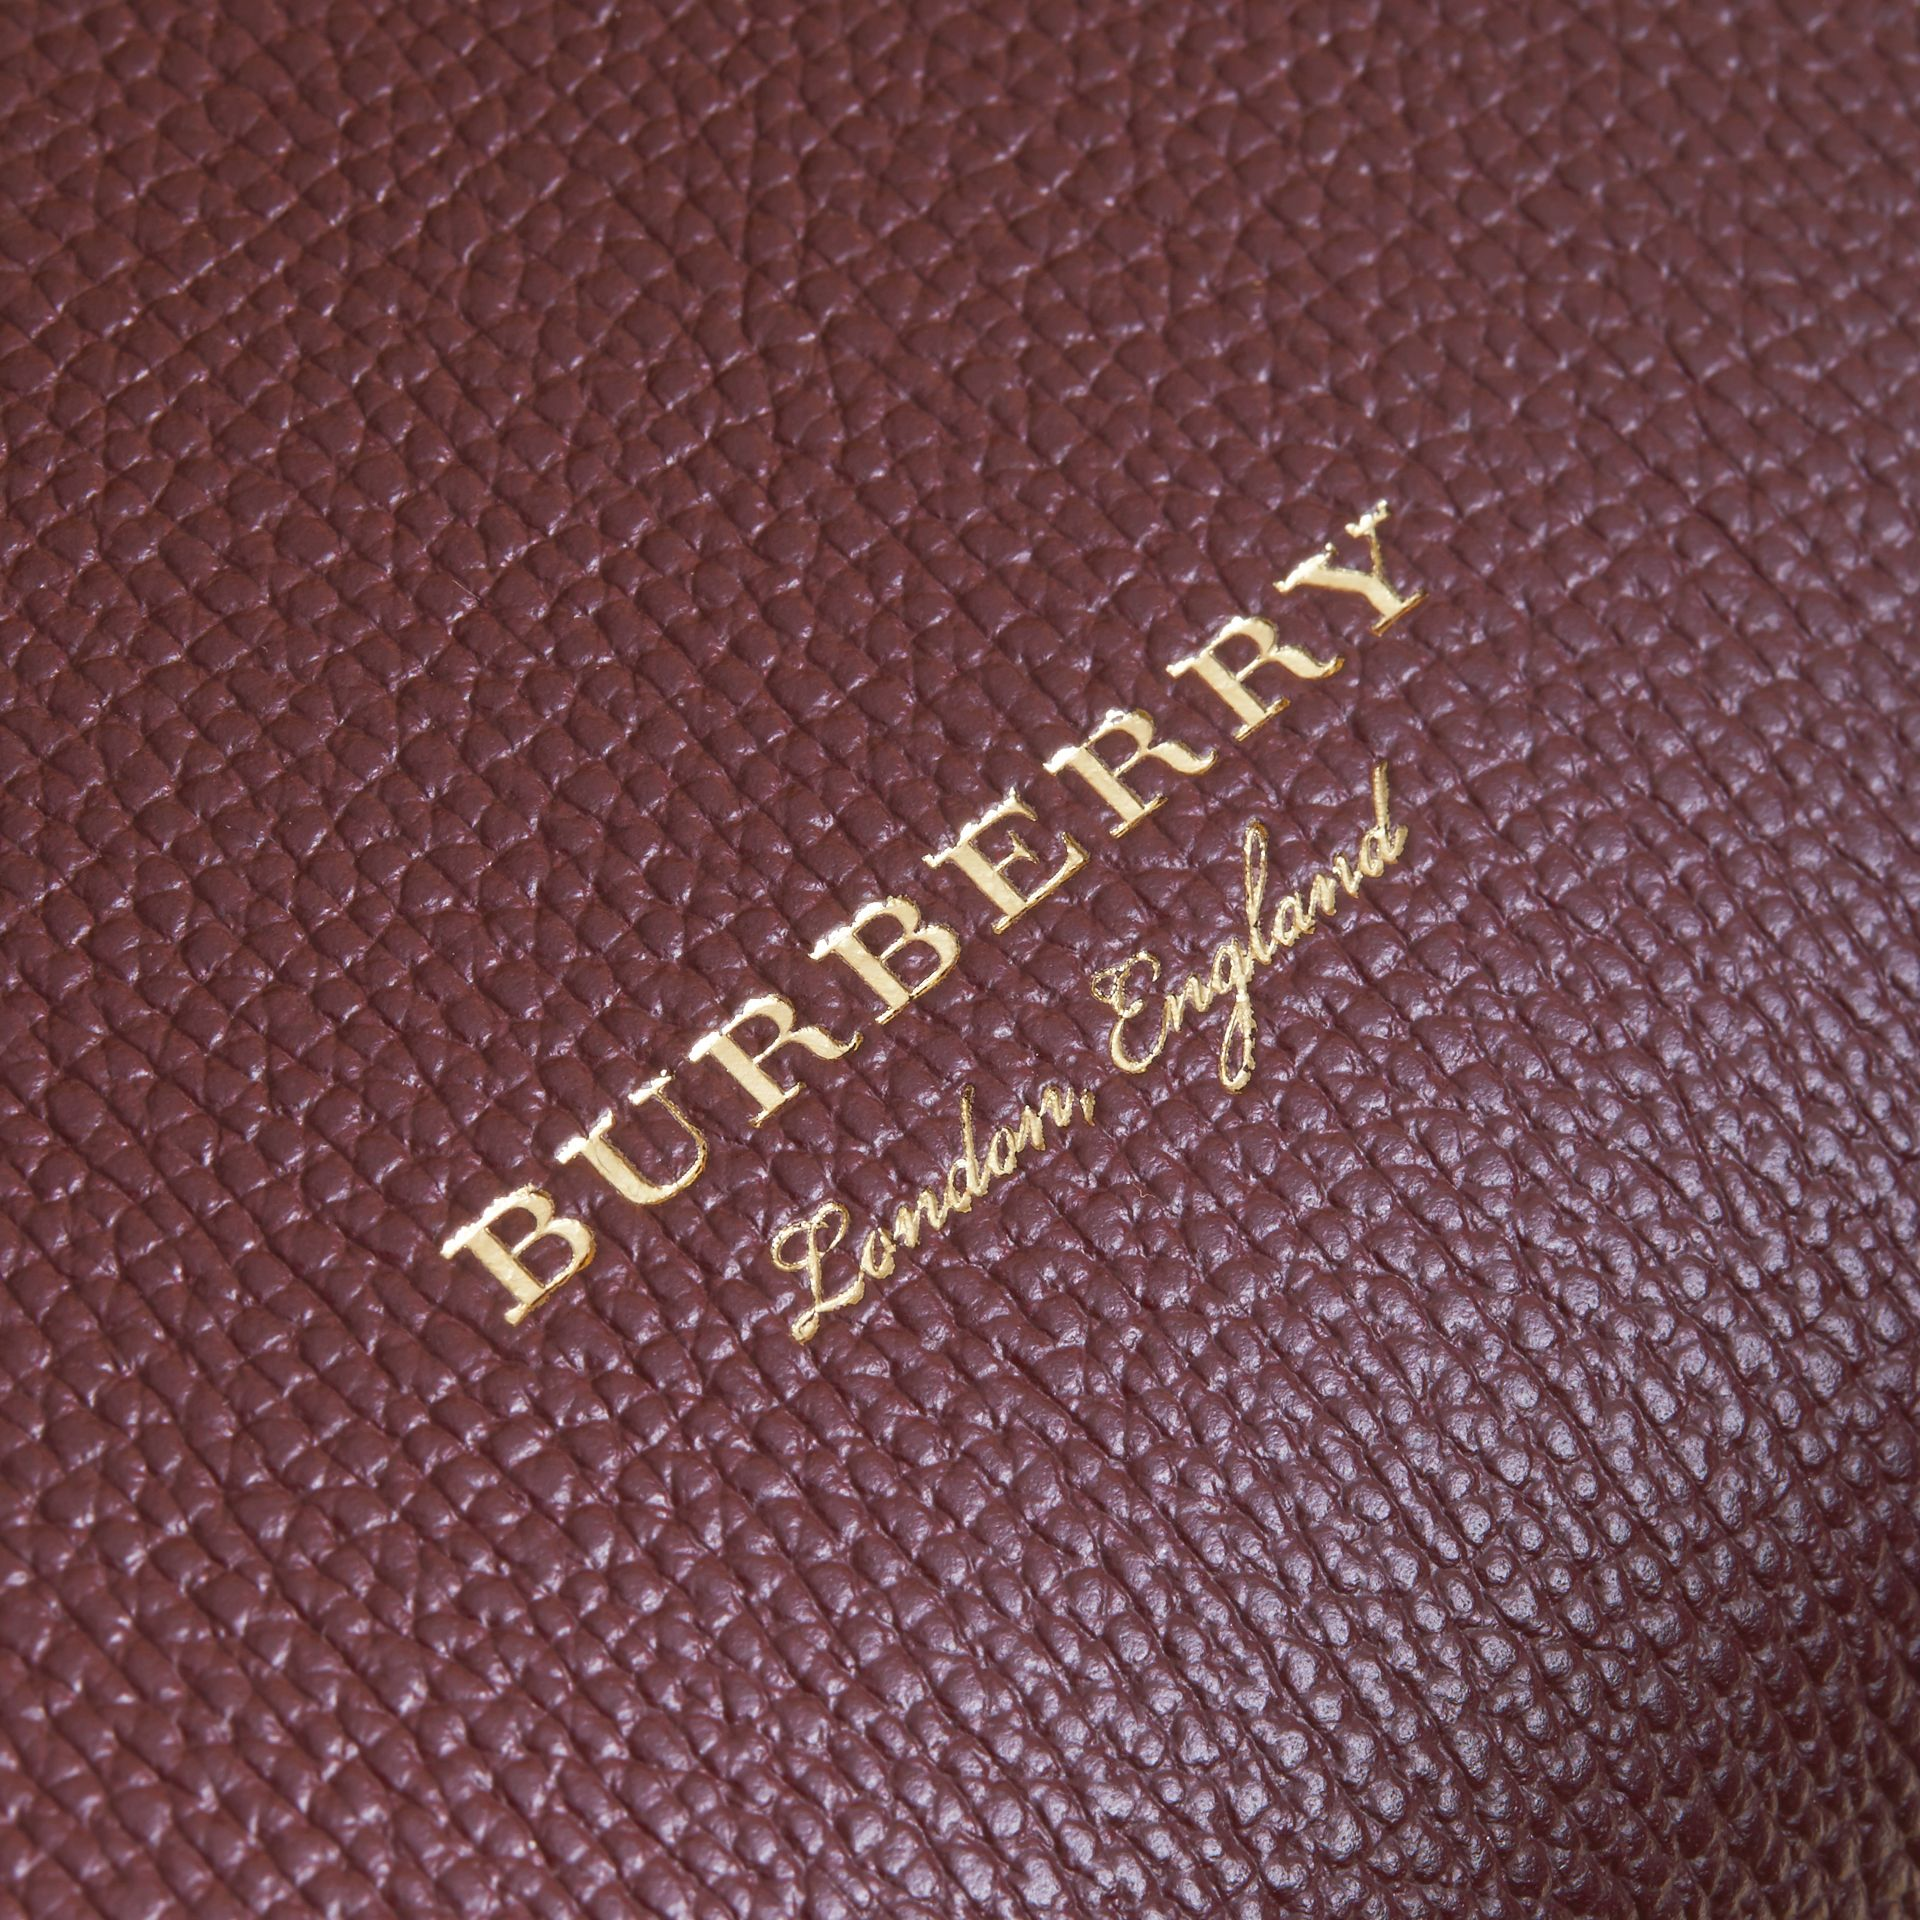 Medium Grainy Leather and House Check Tote Bag in Mahogany Red - Women | Burberry Singapore - gallery image 2